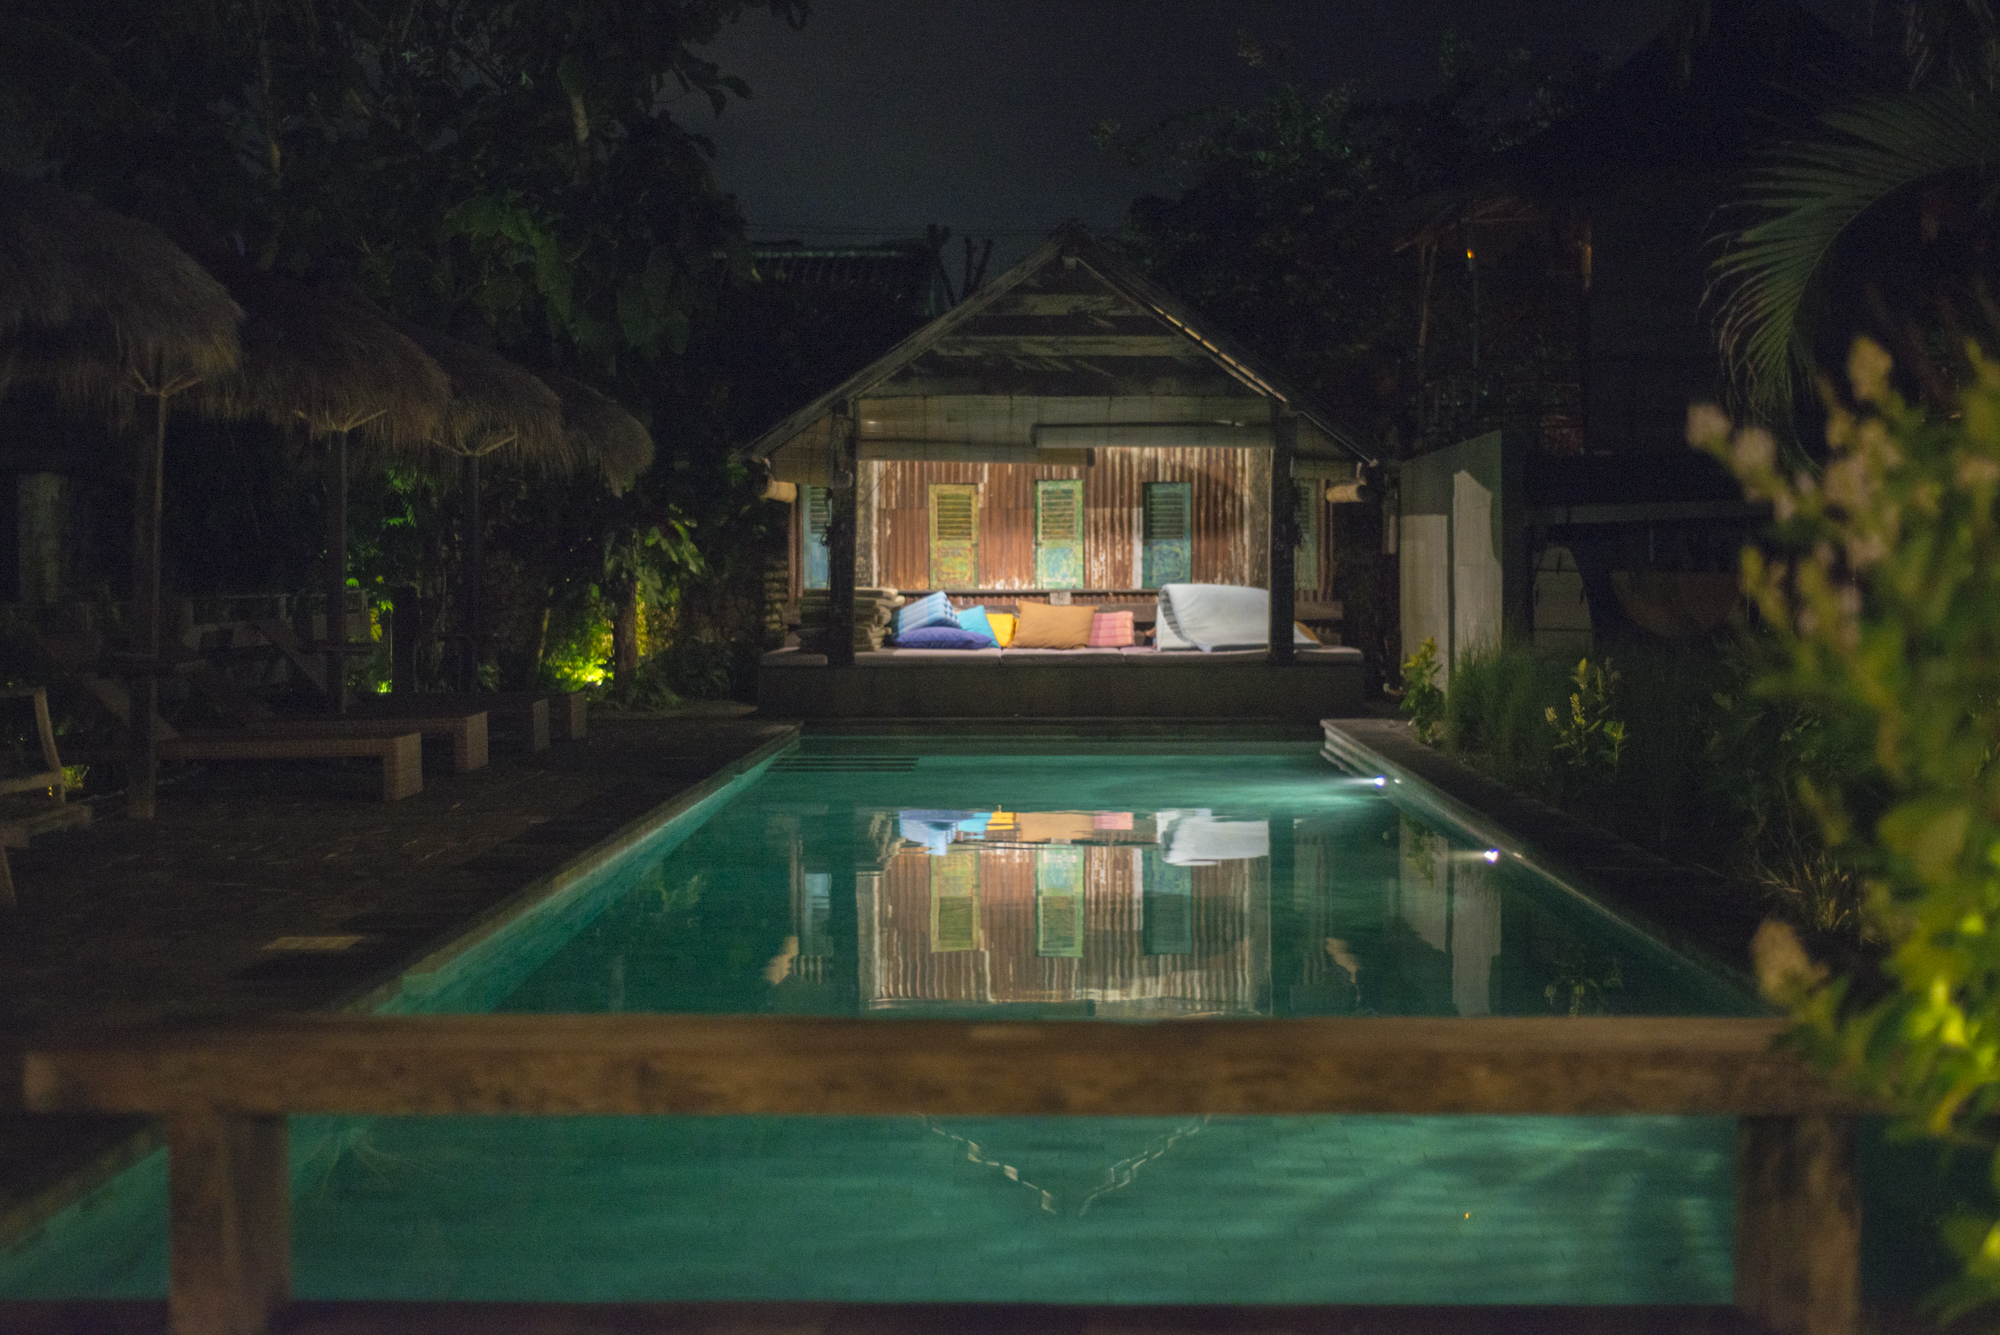 The Rapture pool at night